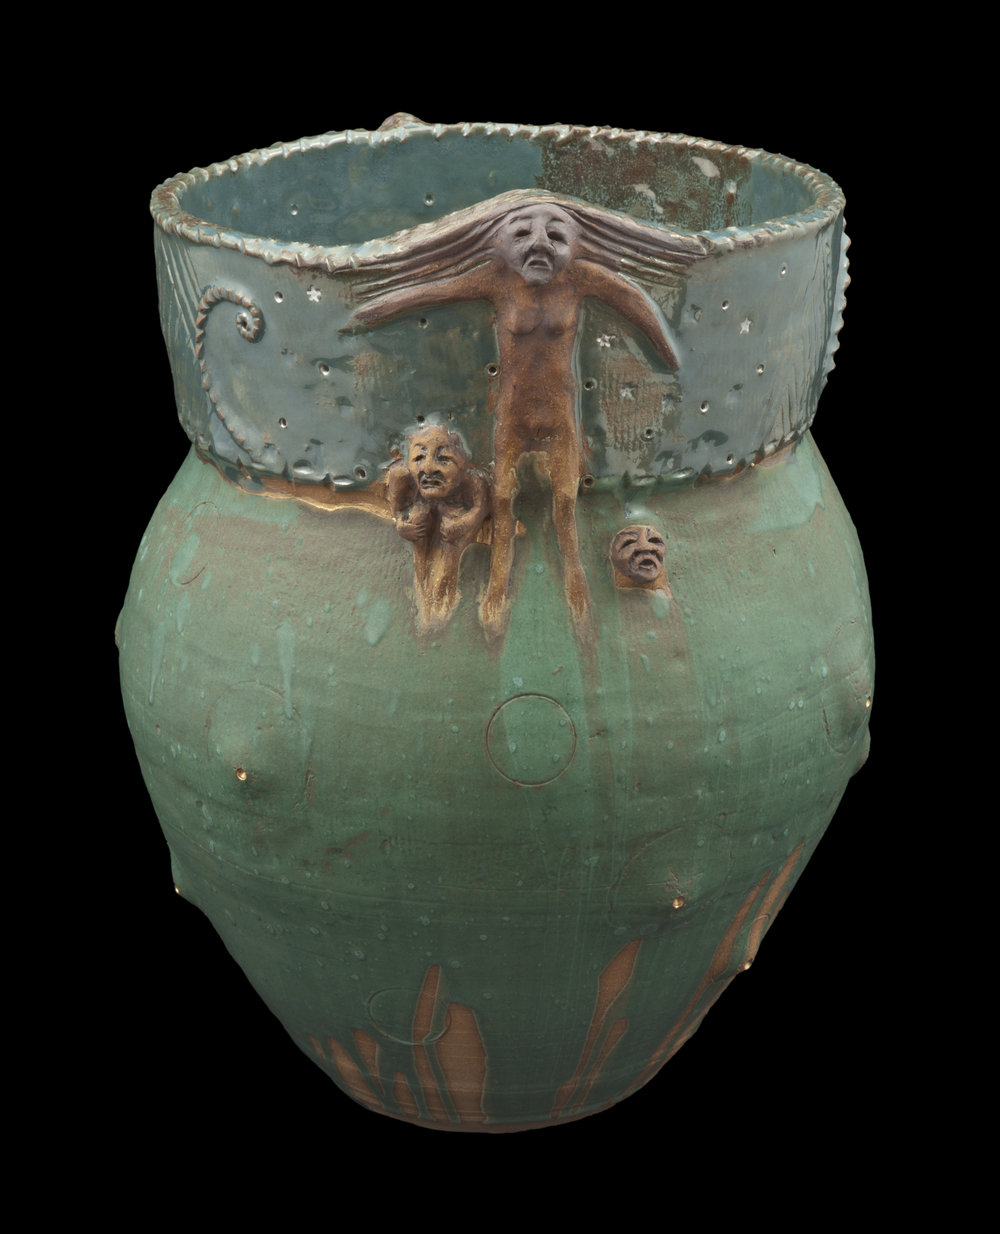 3-Peter_B_Jones_2013_Skywoman_Pot_Stoneware_copper_green_glaze_14_Hart.jpg